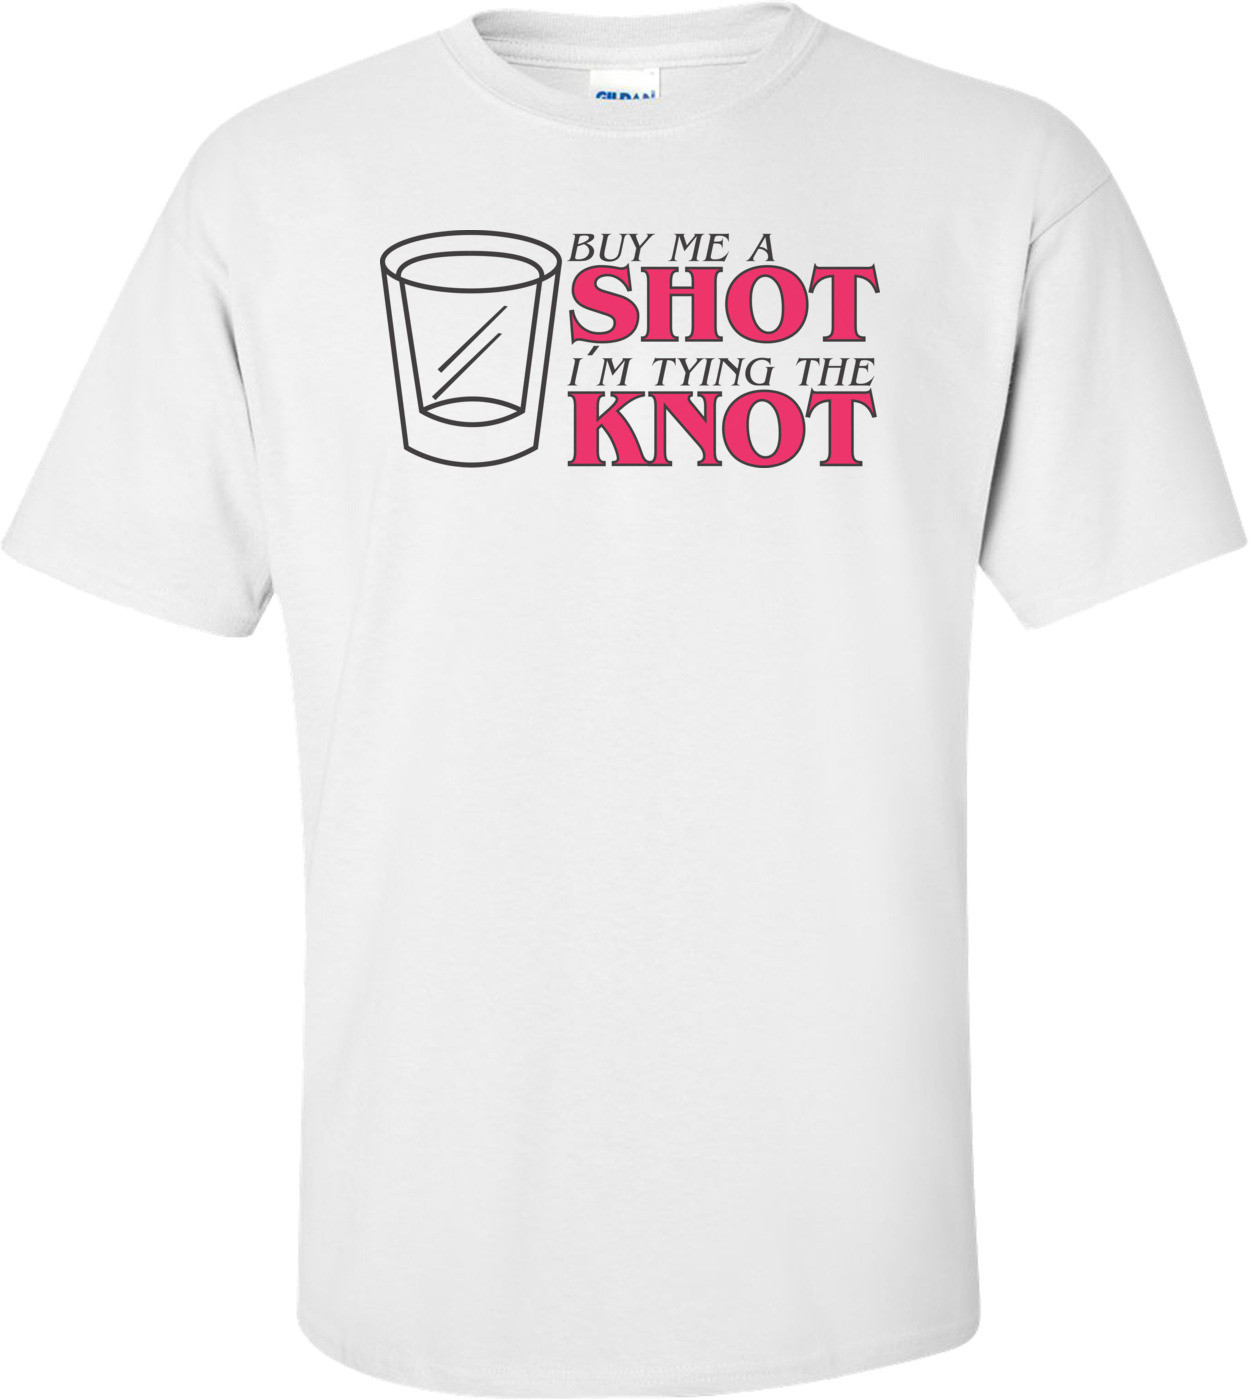 Buy Me A Shot I'm Tying The Knot 2 T-shirt